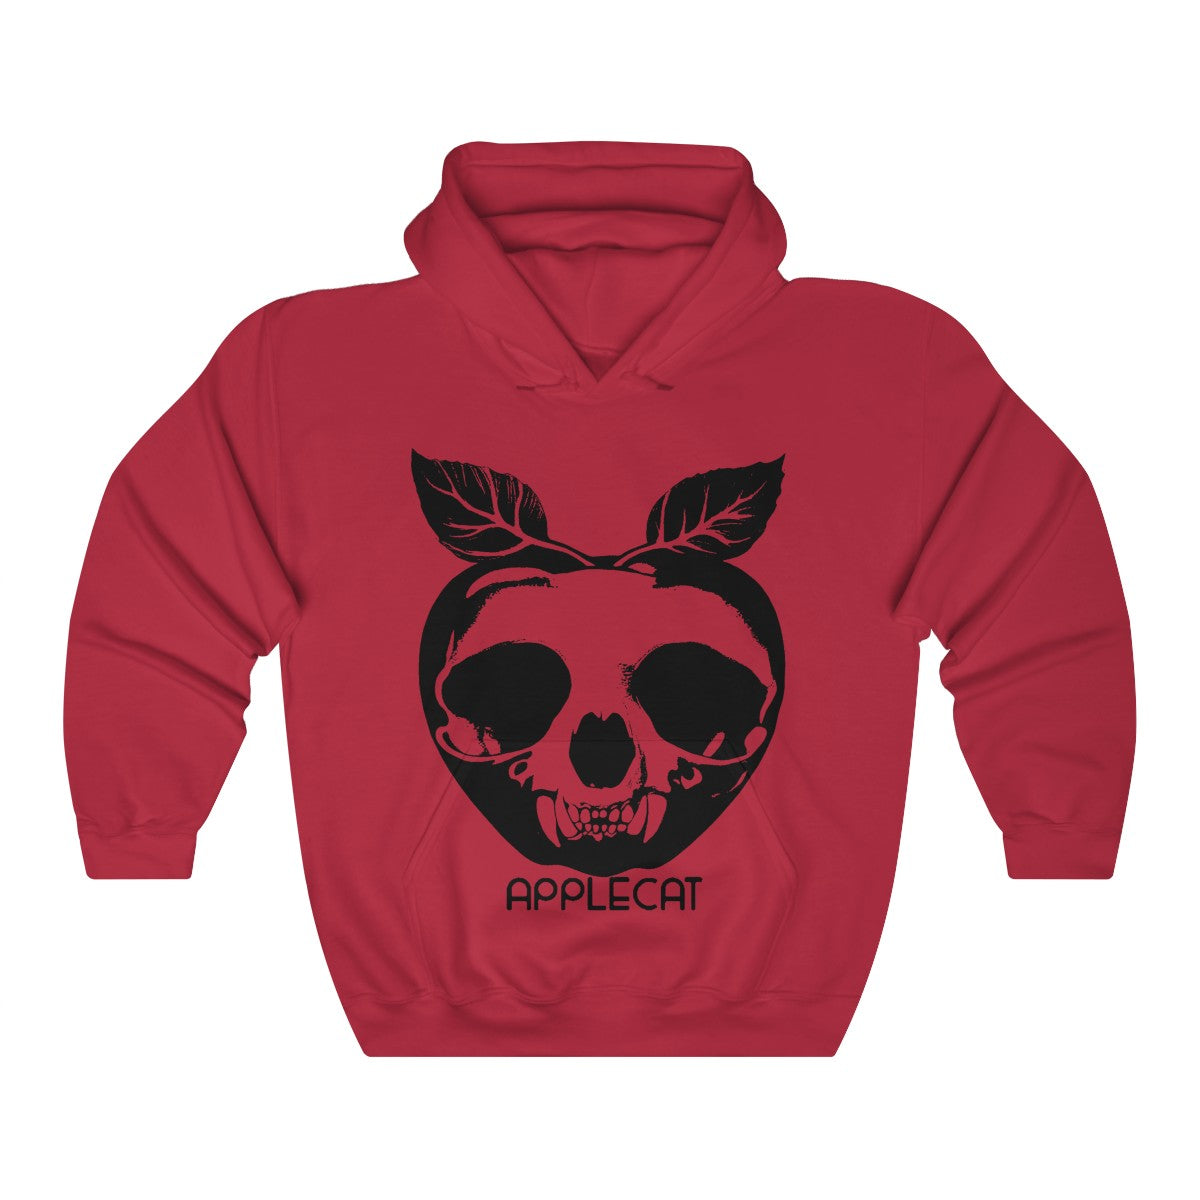 AppleCat Whatever Gender Heavy Blend Hoodie (12 colours available)